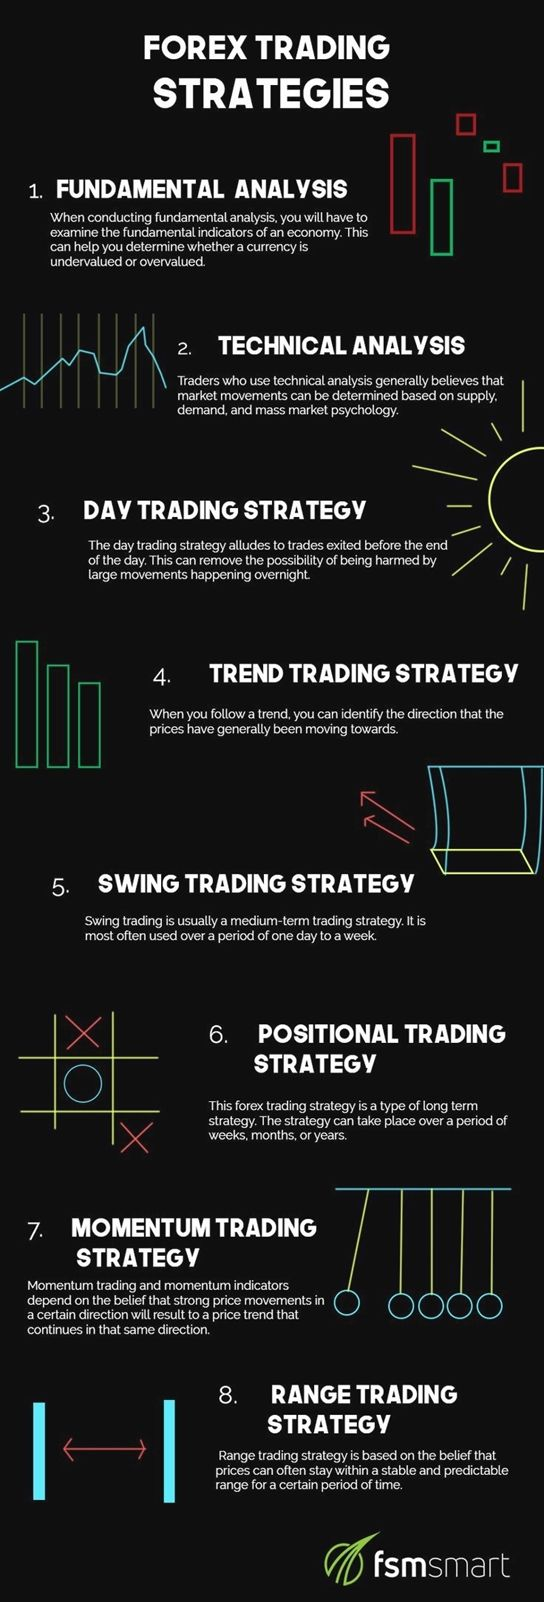 xm forex trading for beginners